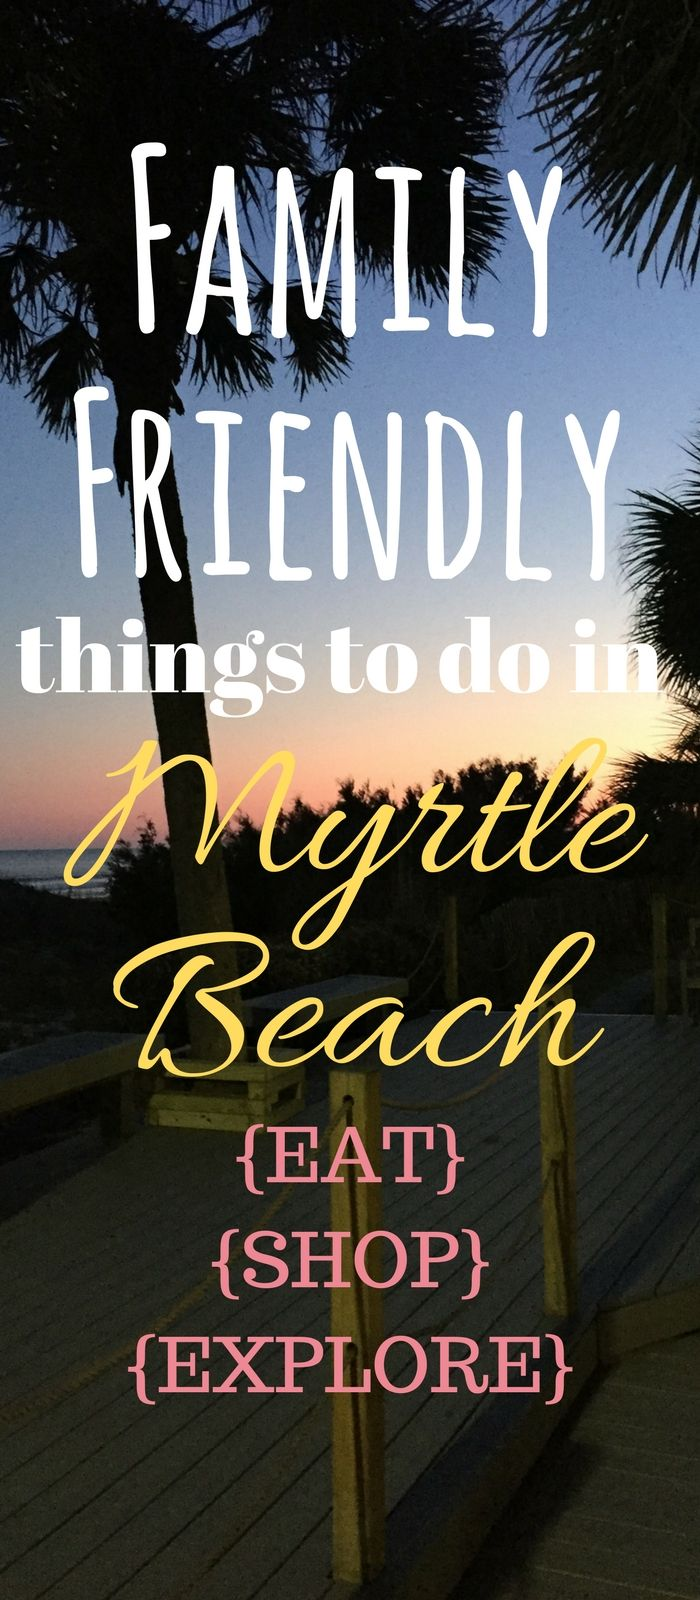 Activities and fun things to do with your family in Myrtle Beach, South Carolina.  Places to eat, shop, and see with the whole family.  Every age can have fun!